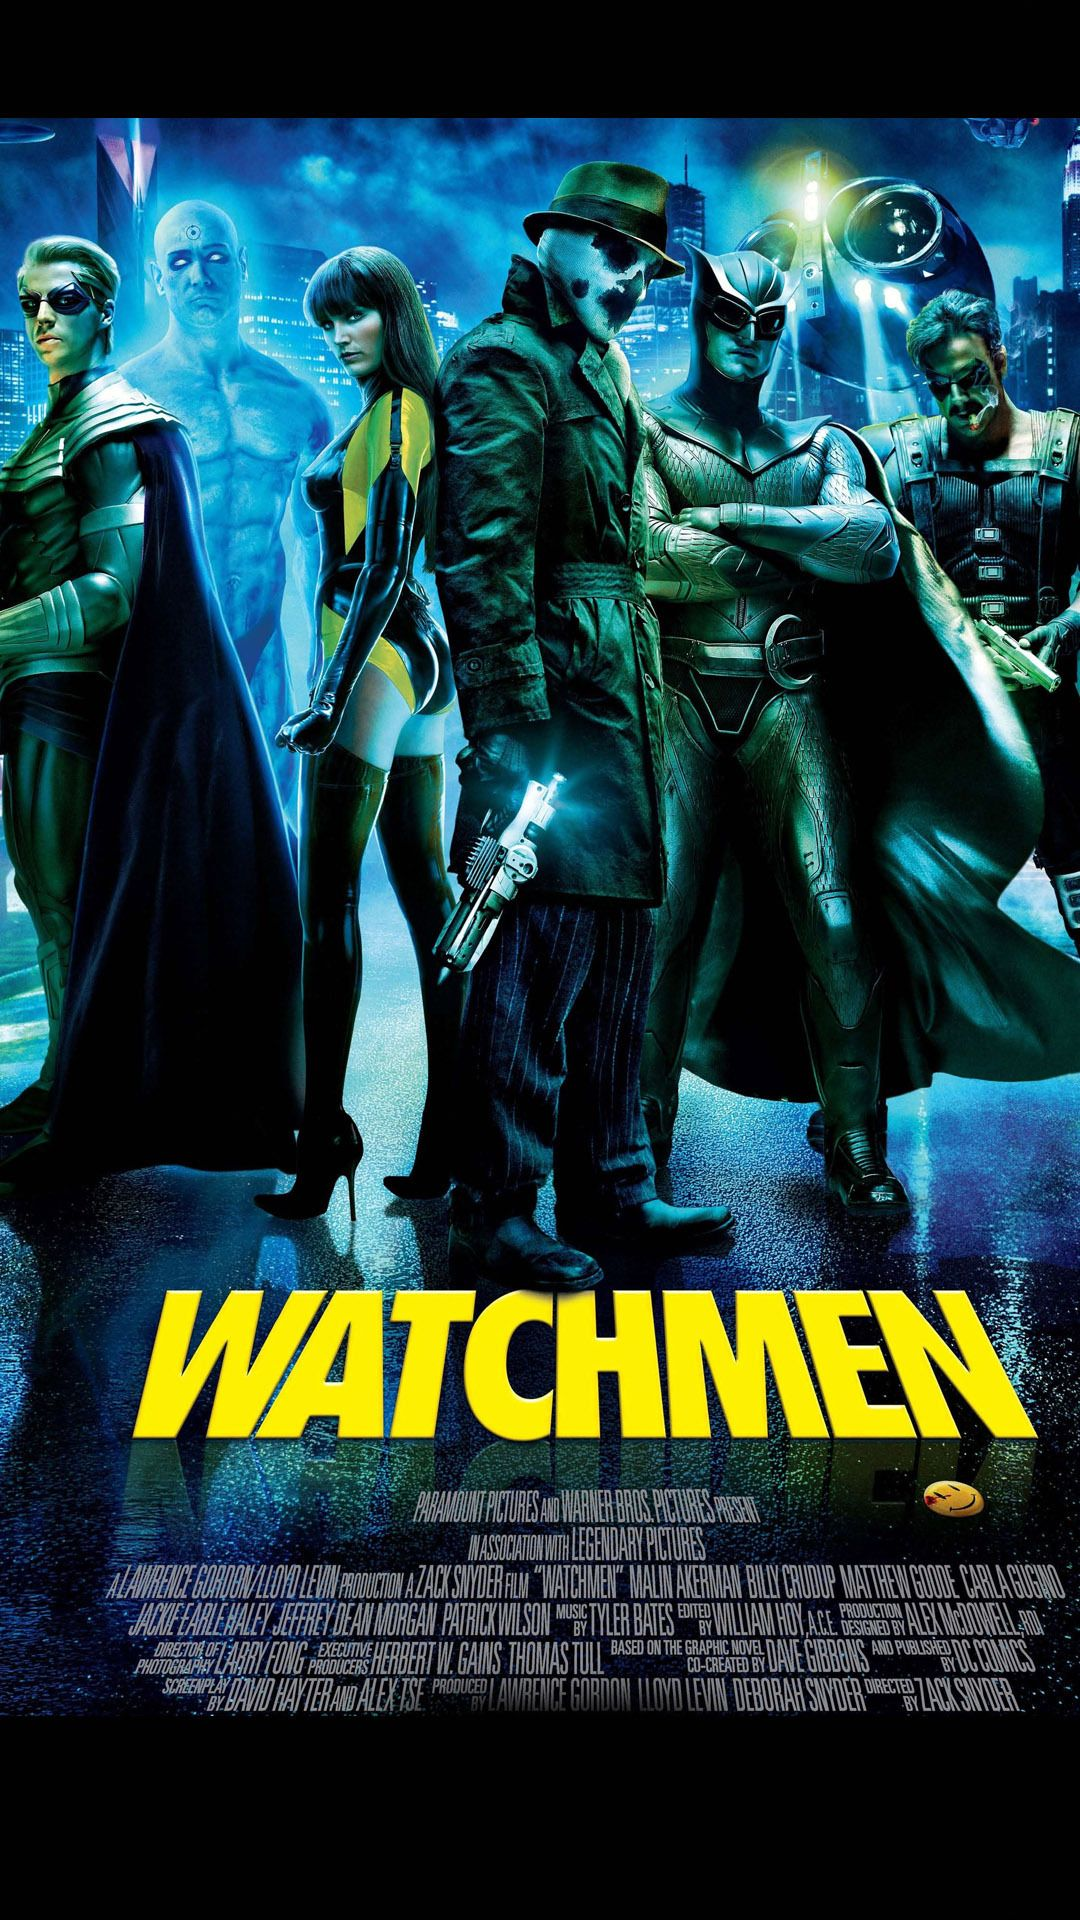 watchmen hd desktop wallpaper widescreen high definition mobile | hd